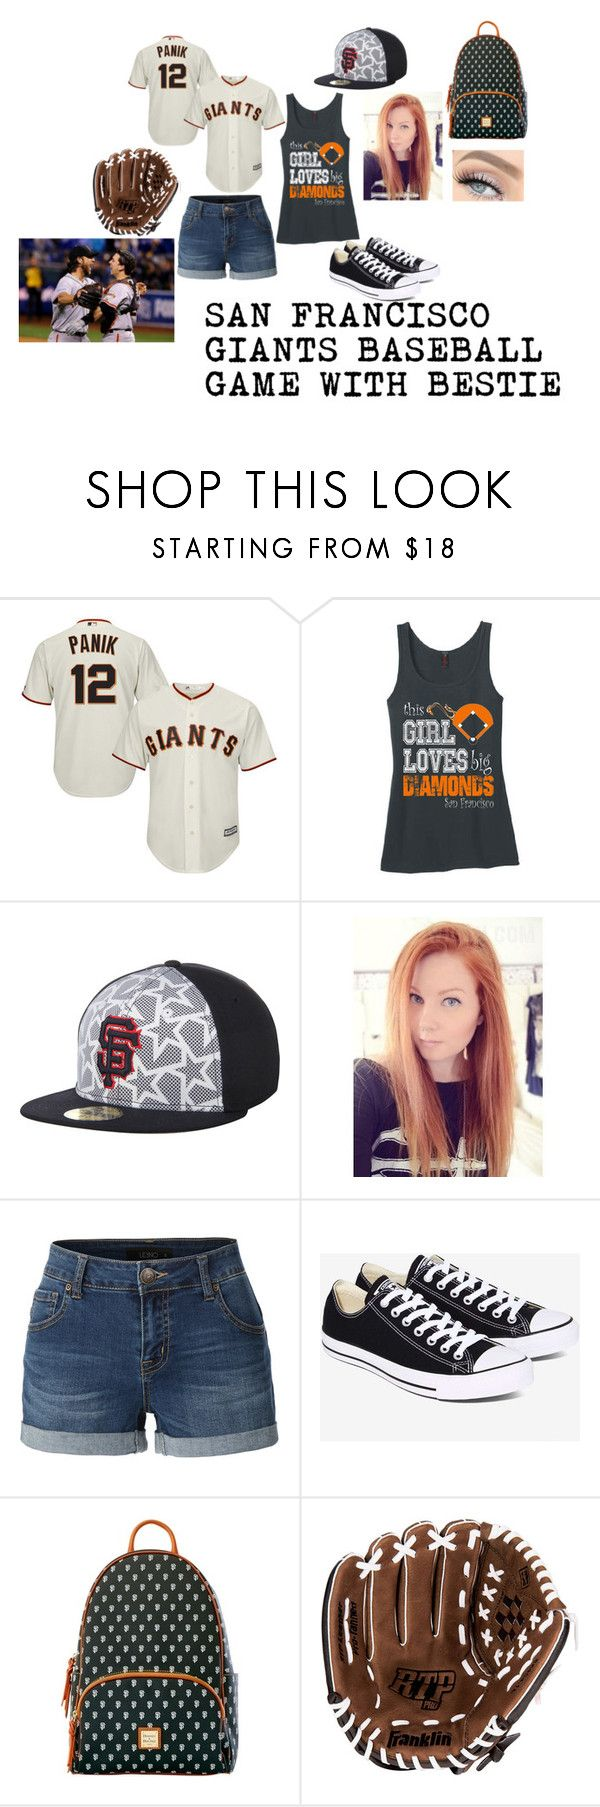 """""""~SF GIANTS GAME WITH BESTIE~"""" by sammmshall ❤ liked on Polyvore featuring LE3NO, Converse, Dooney & Bourke and Franklin"""